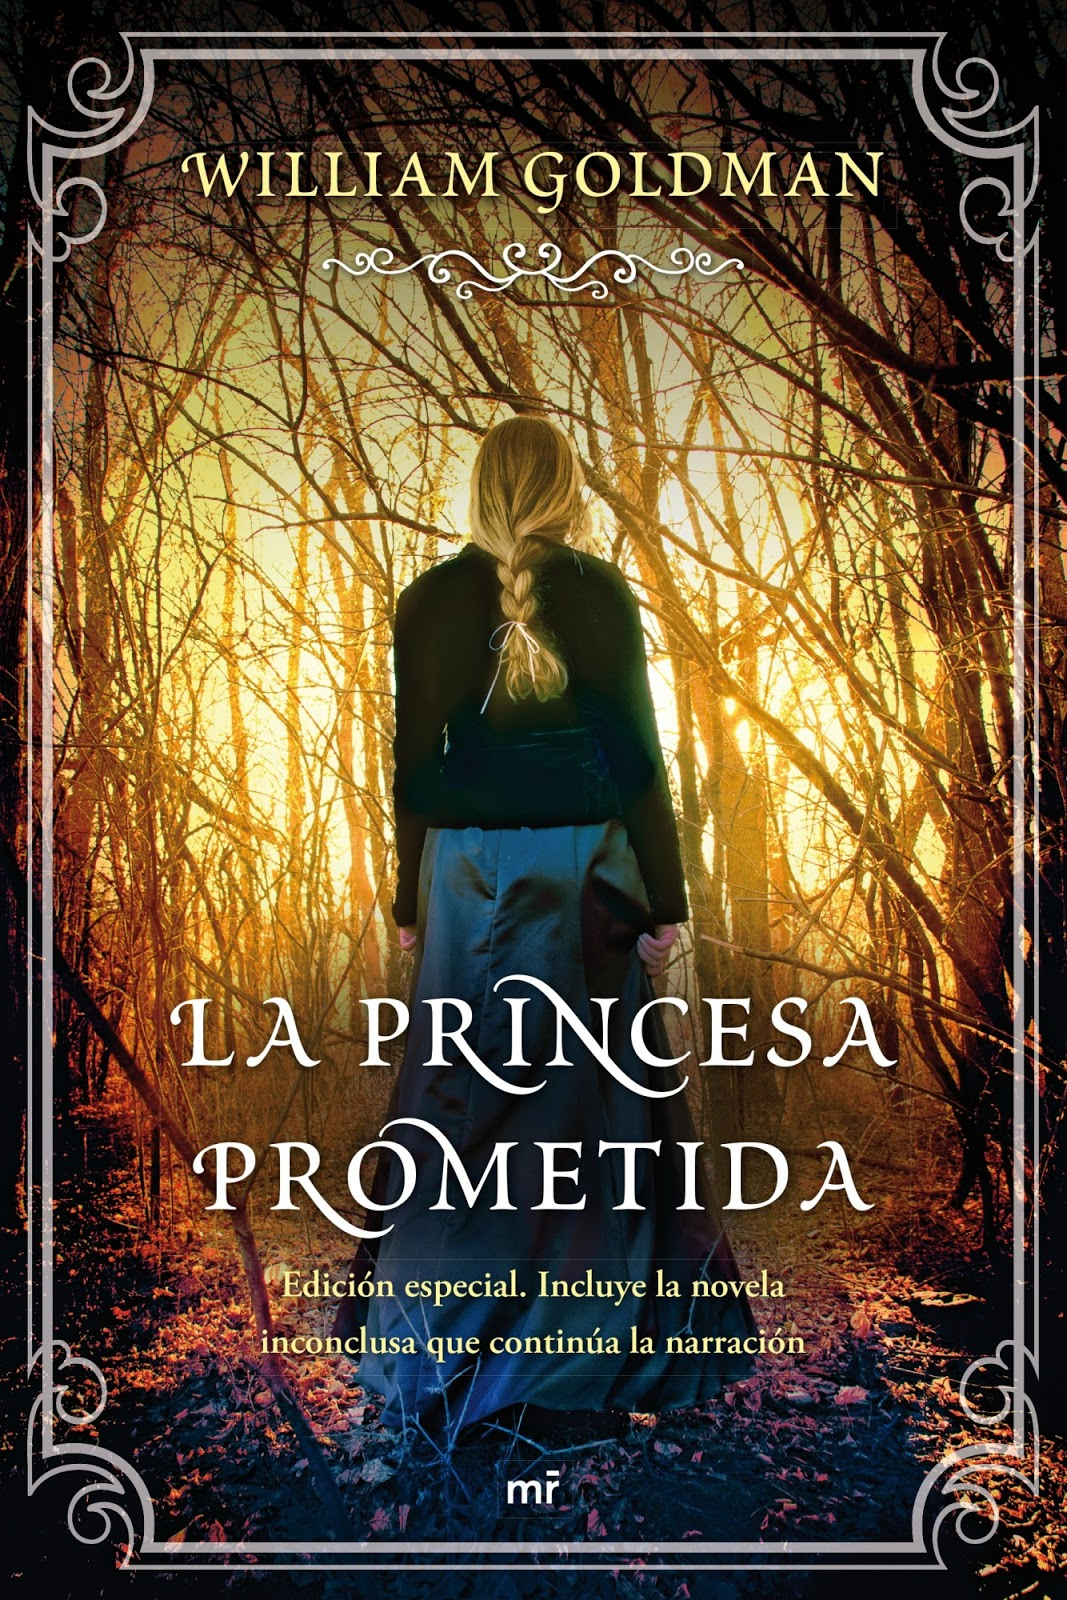 La princesa prometida - William Goldman - Página 3 LA+PRINCESA+PROMETIDA